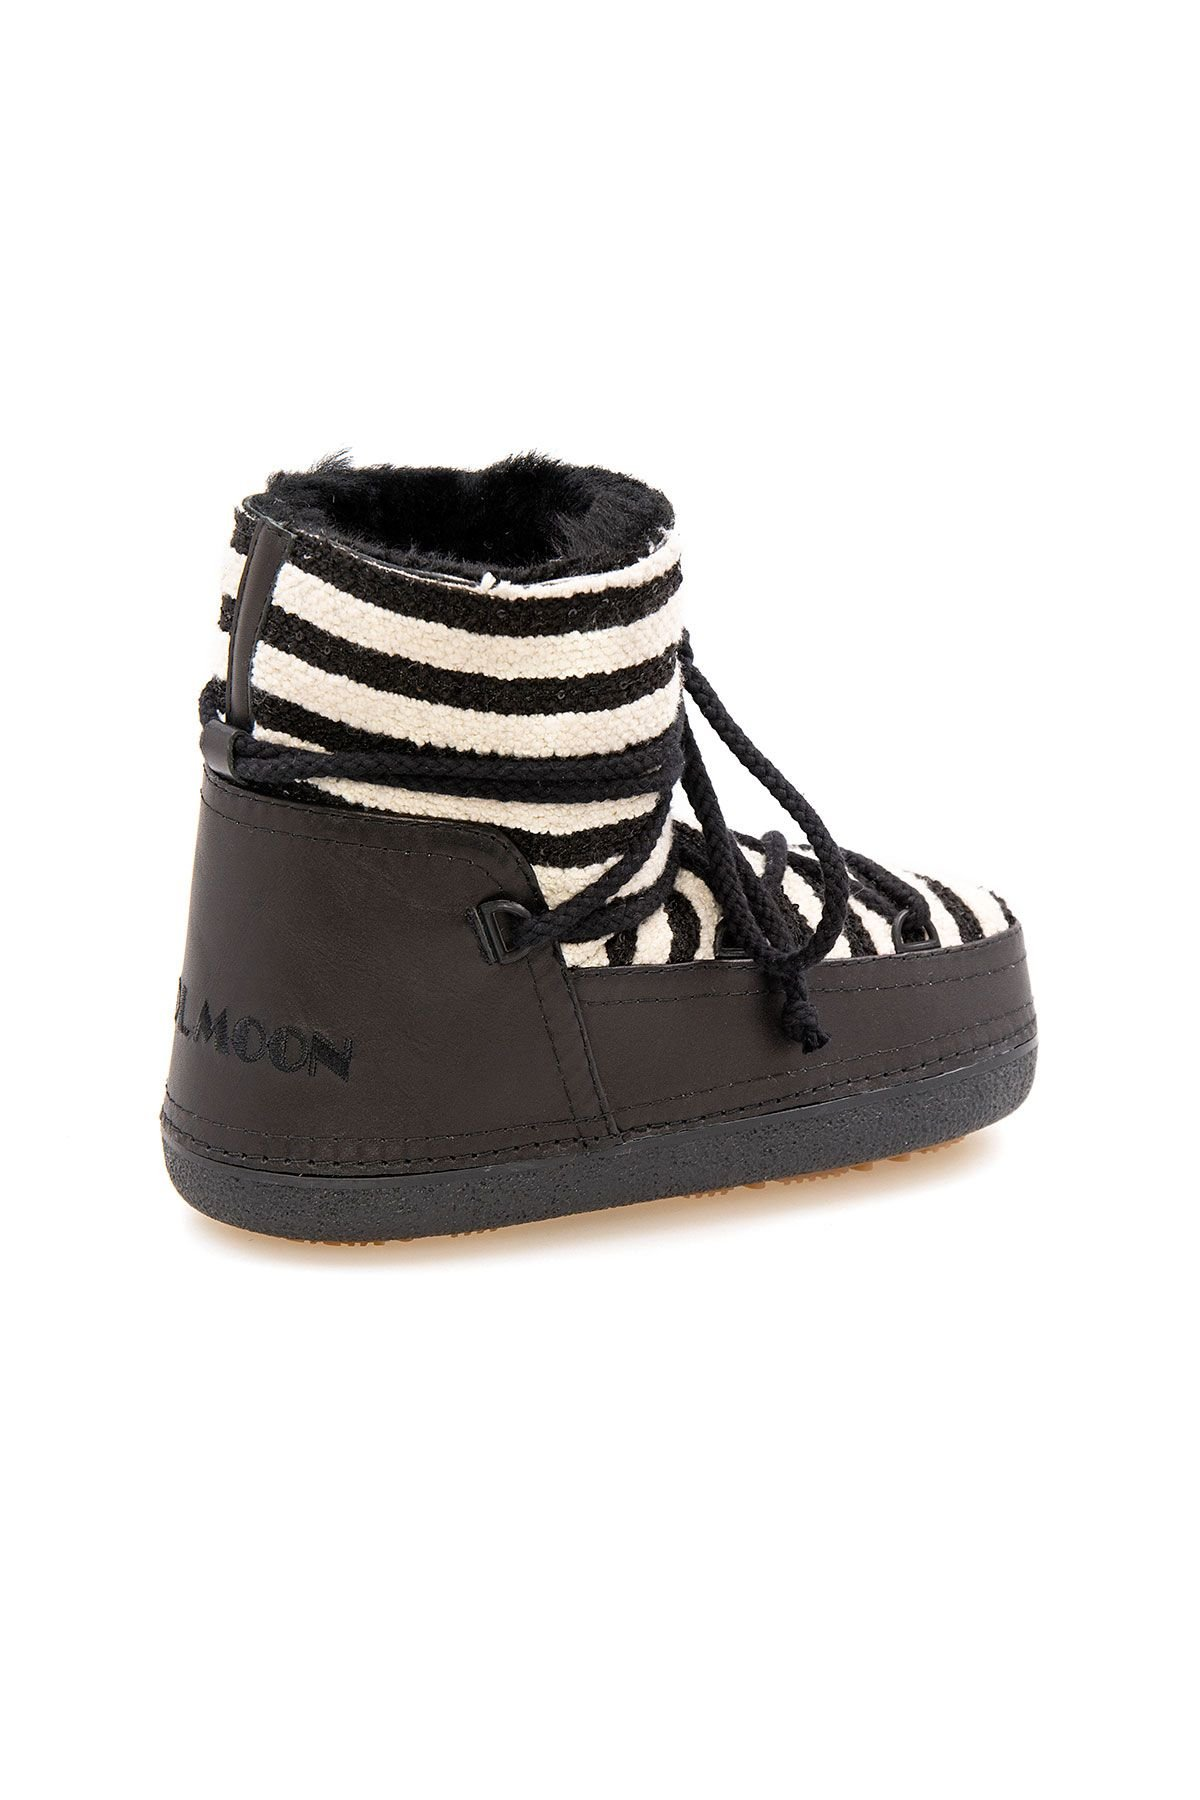 Cool Moon Genuine Sheepskin Lined Women's Snow Boots 251301 Black